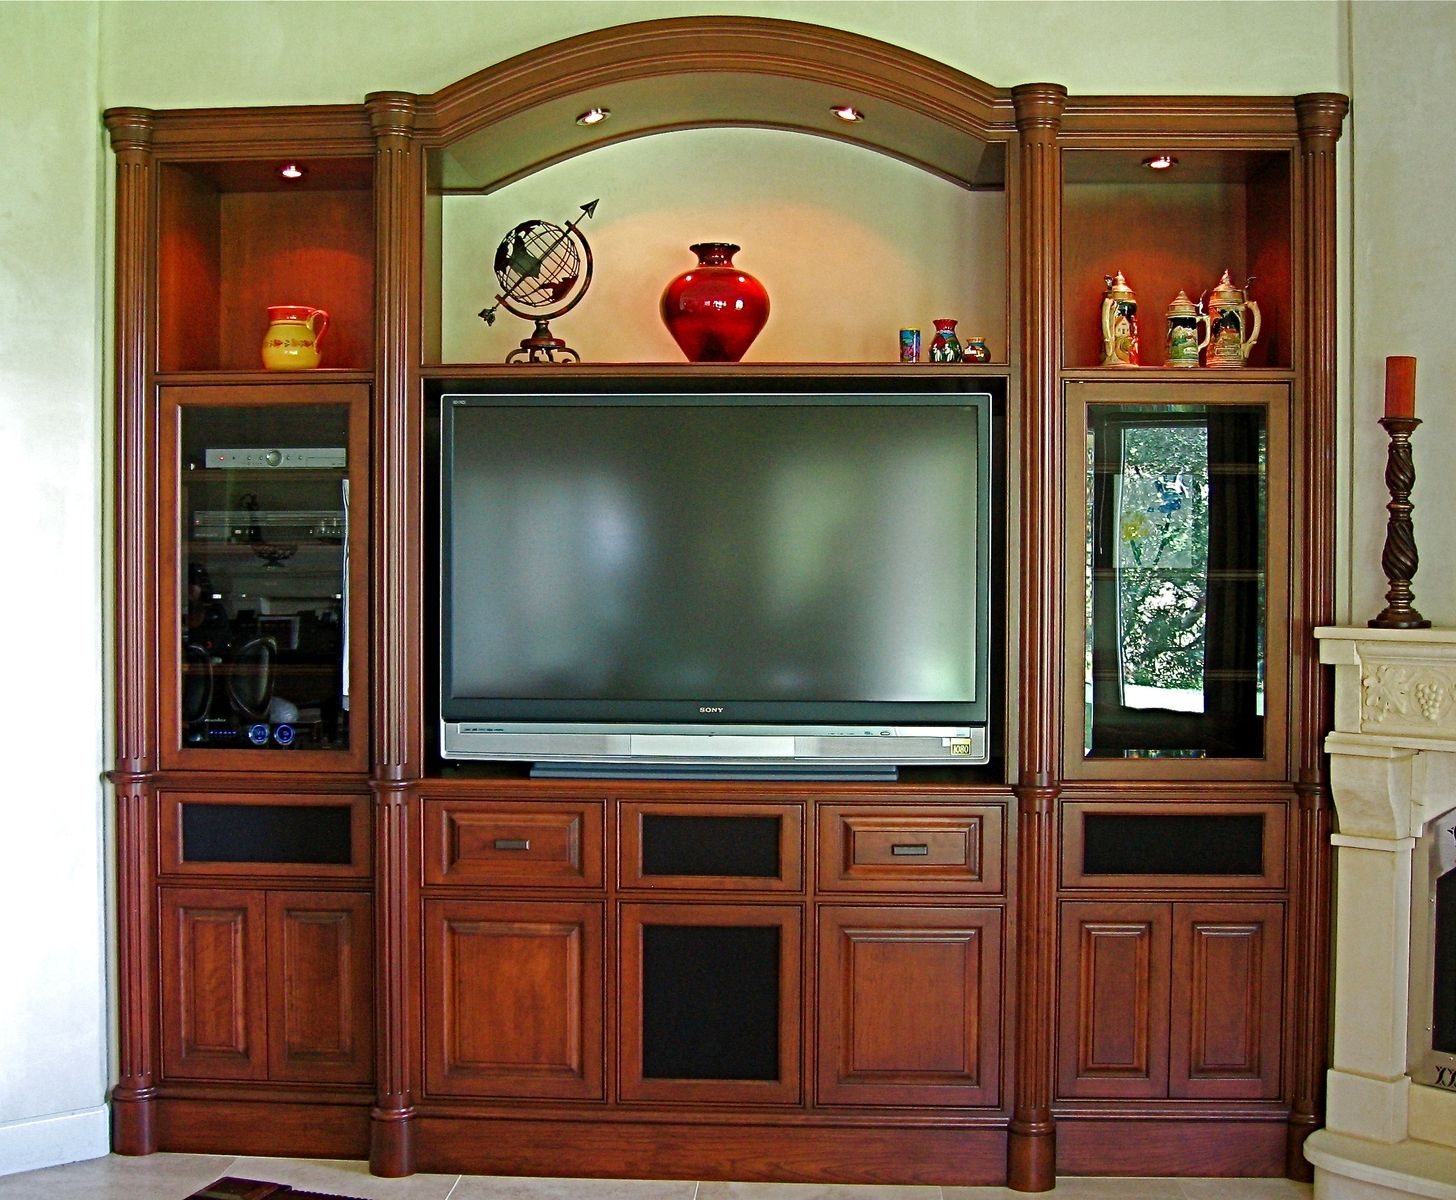 Handmade custom cherry built in media center by ps - Made com meuble tv ...